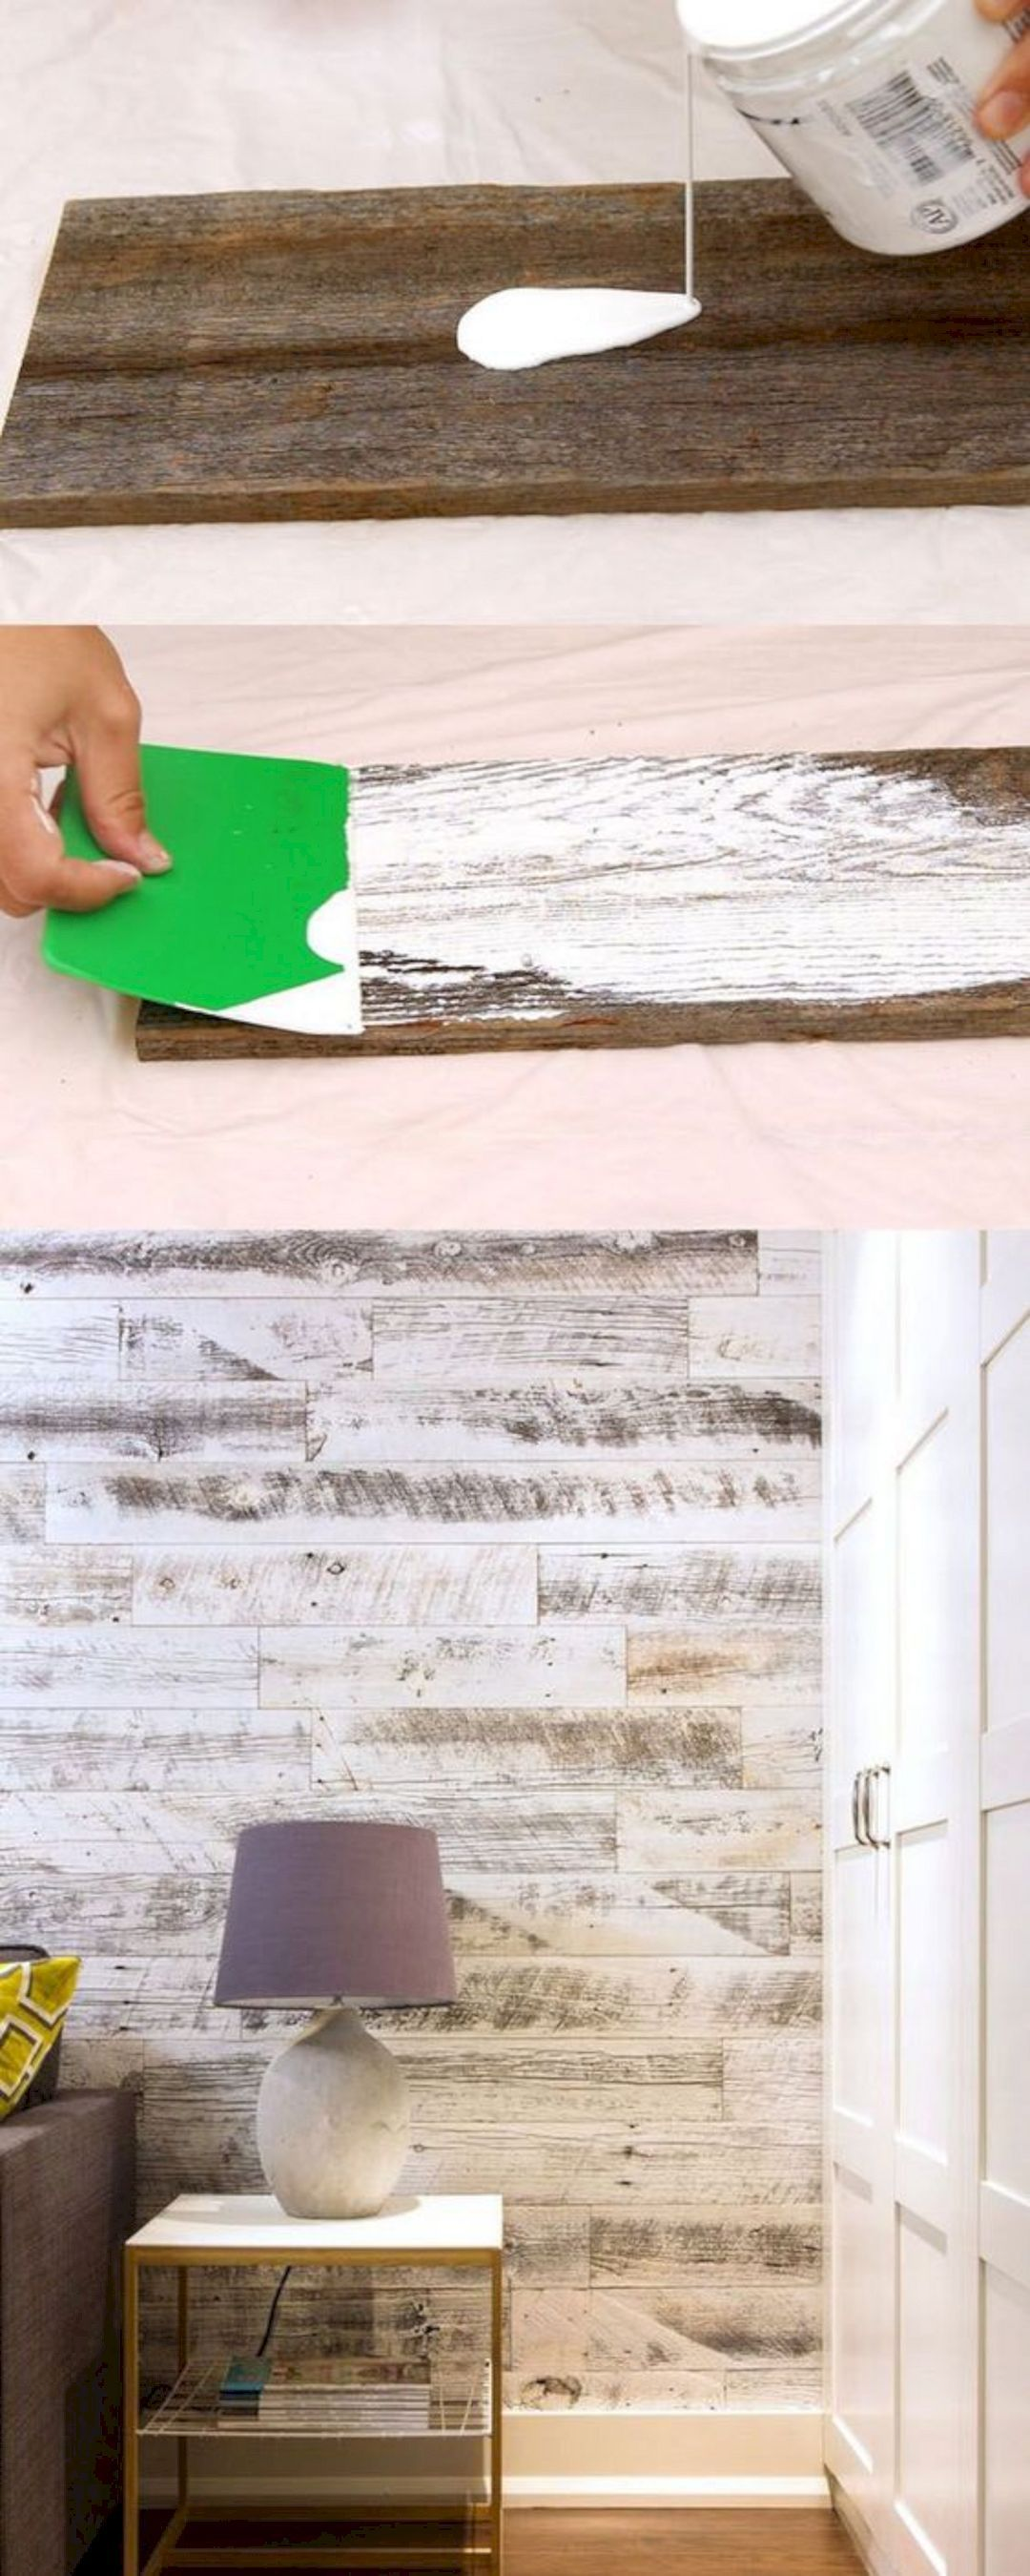 16 Creative DIY Home Decorating Ideas | House, Wall ideas and Wood ...